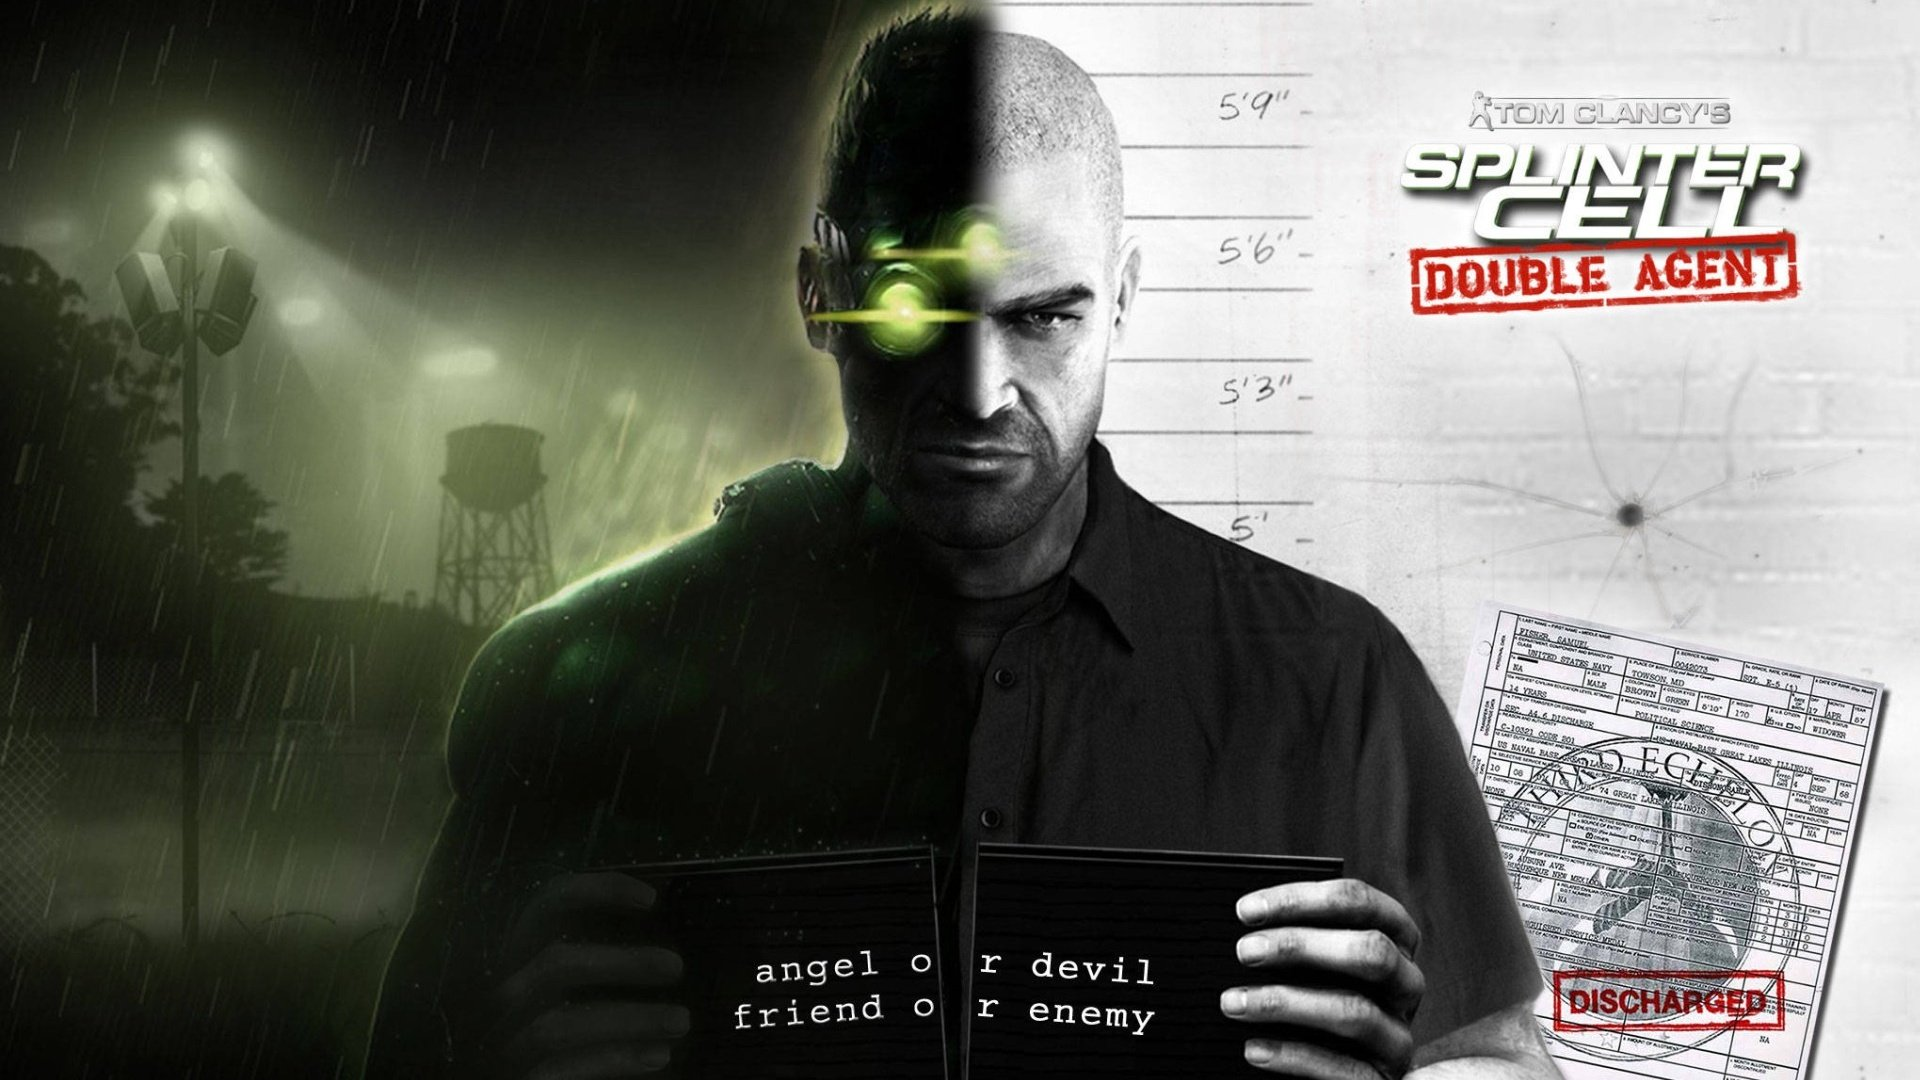 Splinter Cell: Double Agent for Xbox and other games his Xbox One backwards compatibility